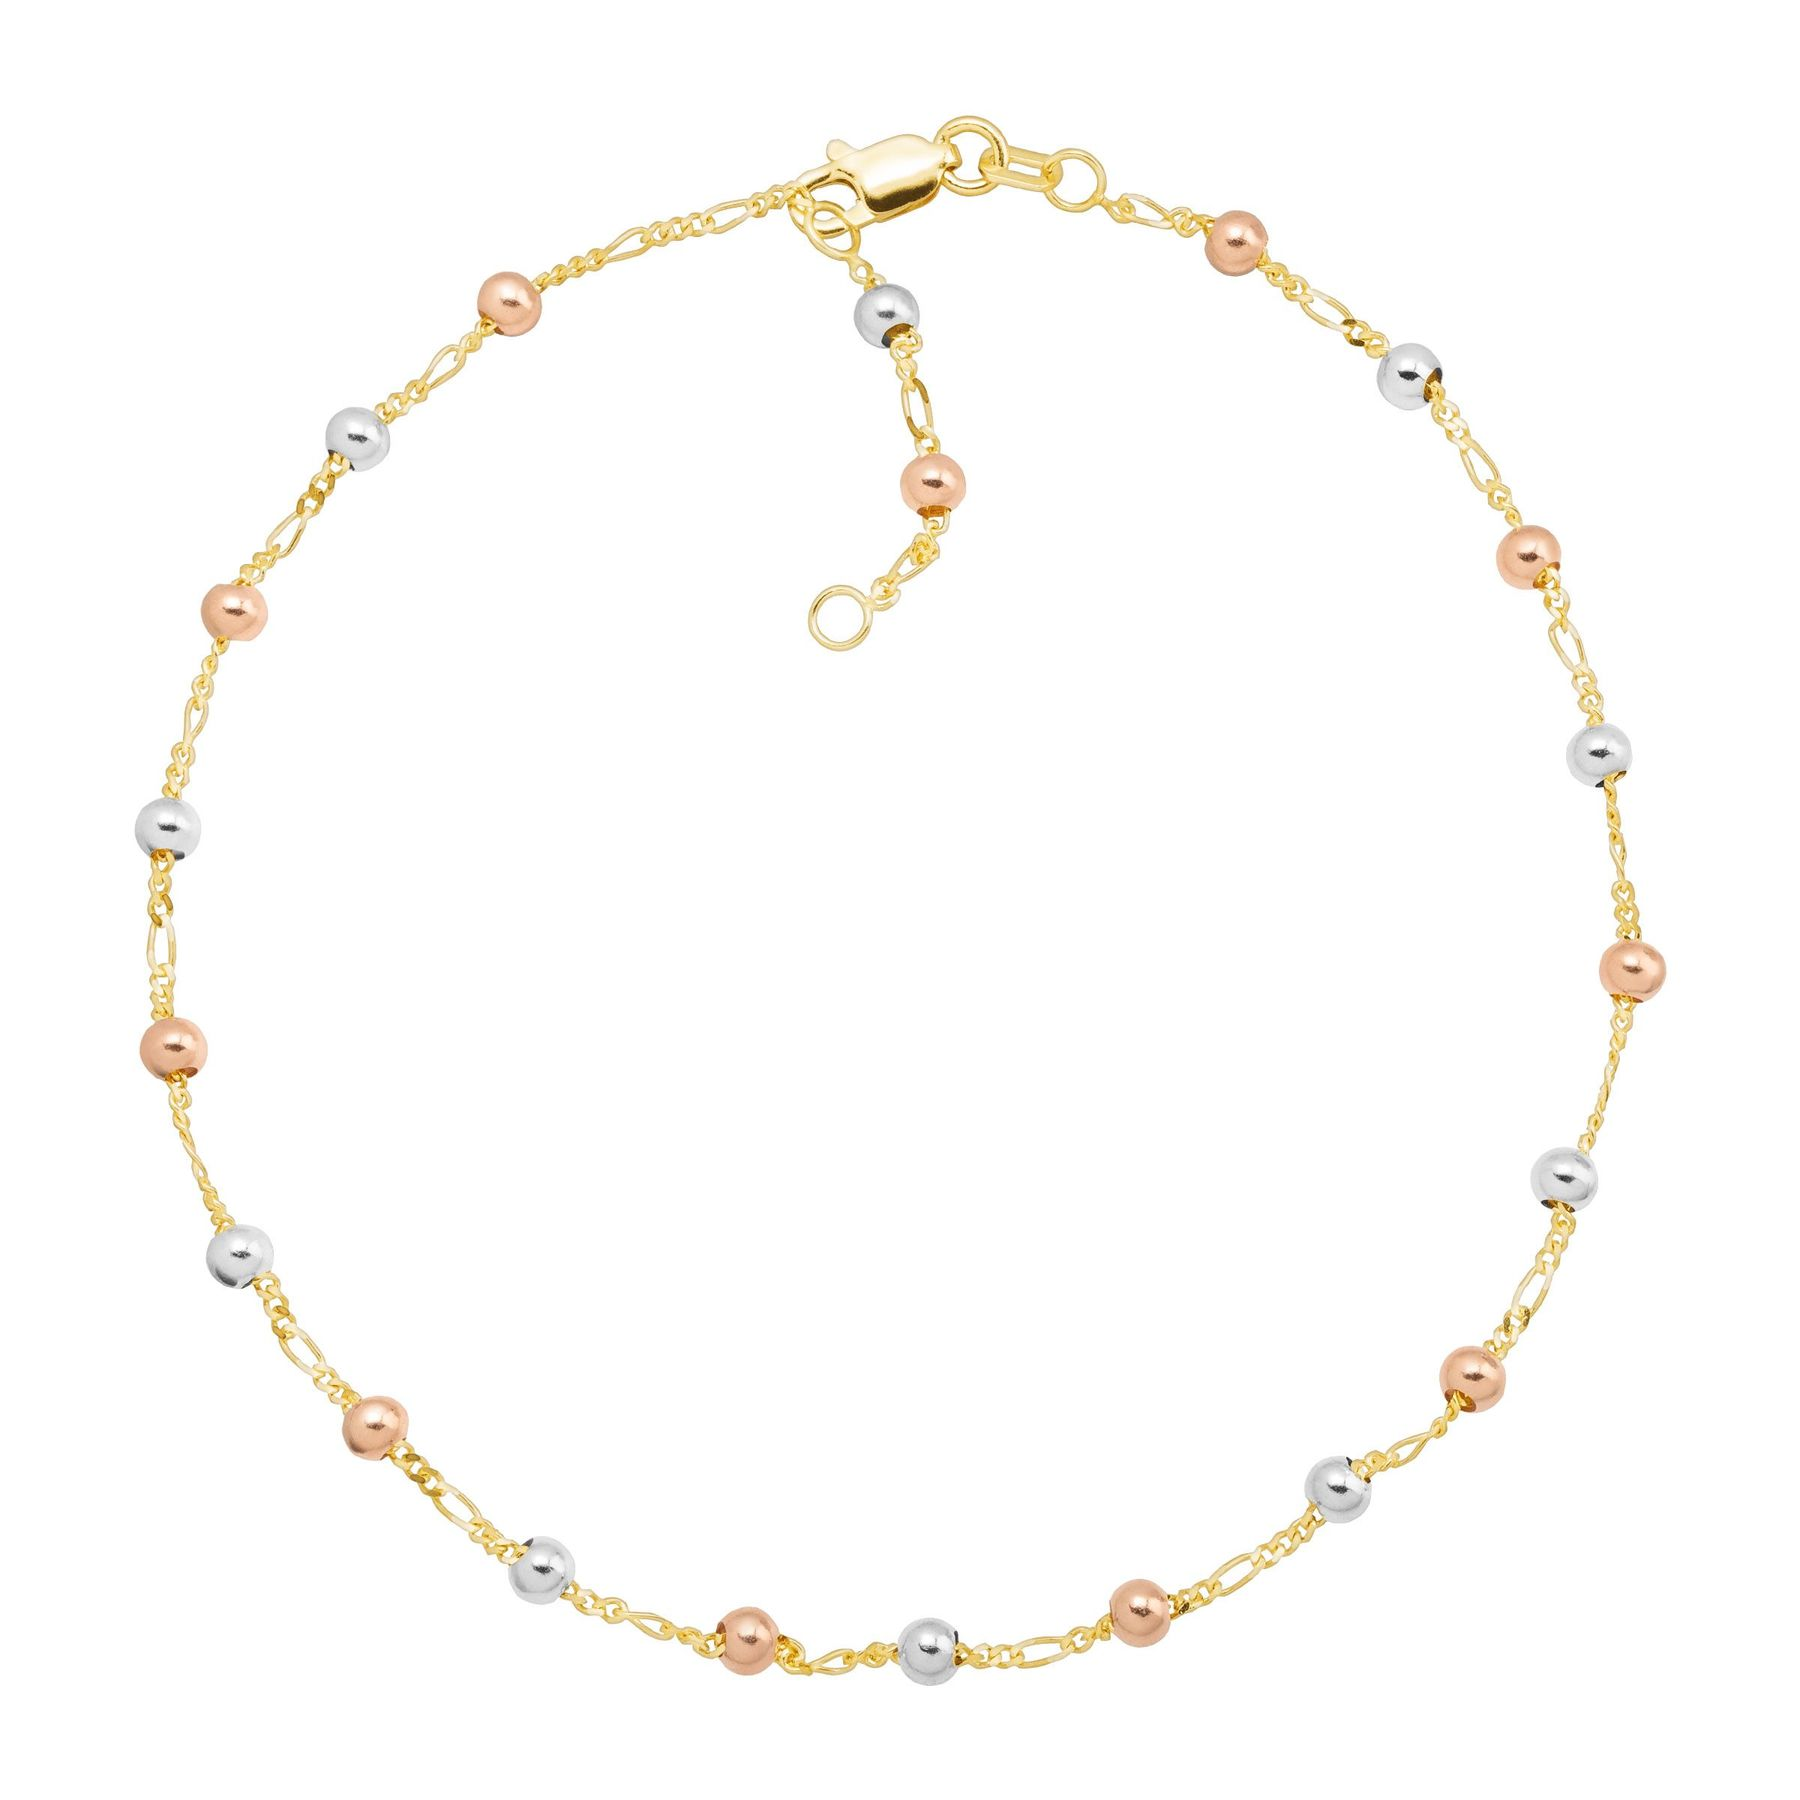 Just Gold Beaded Ankle Bracelet In 14k Three Tone